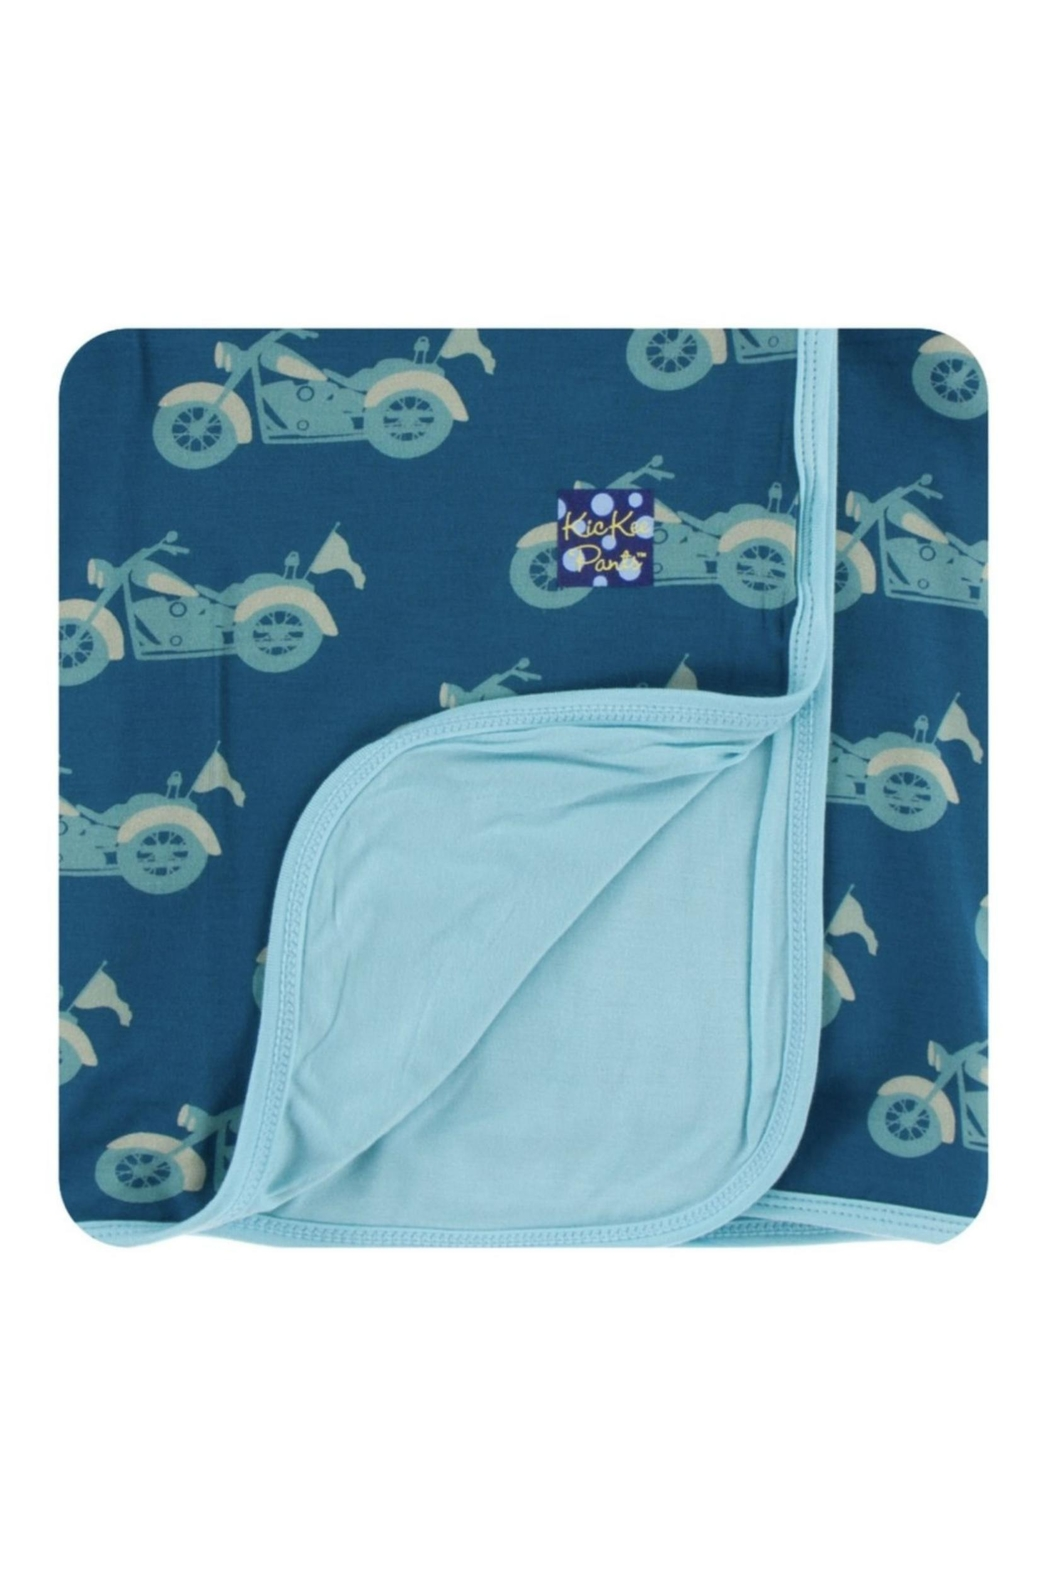 Kickee Pants Motorcycle Toddler-Blanket - Main Image